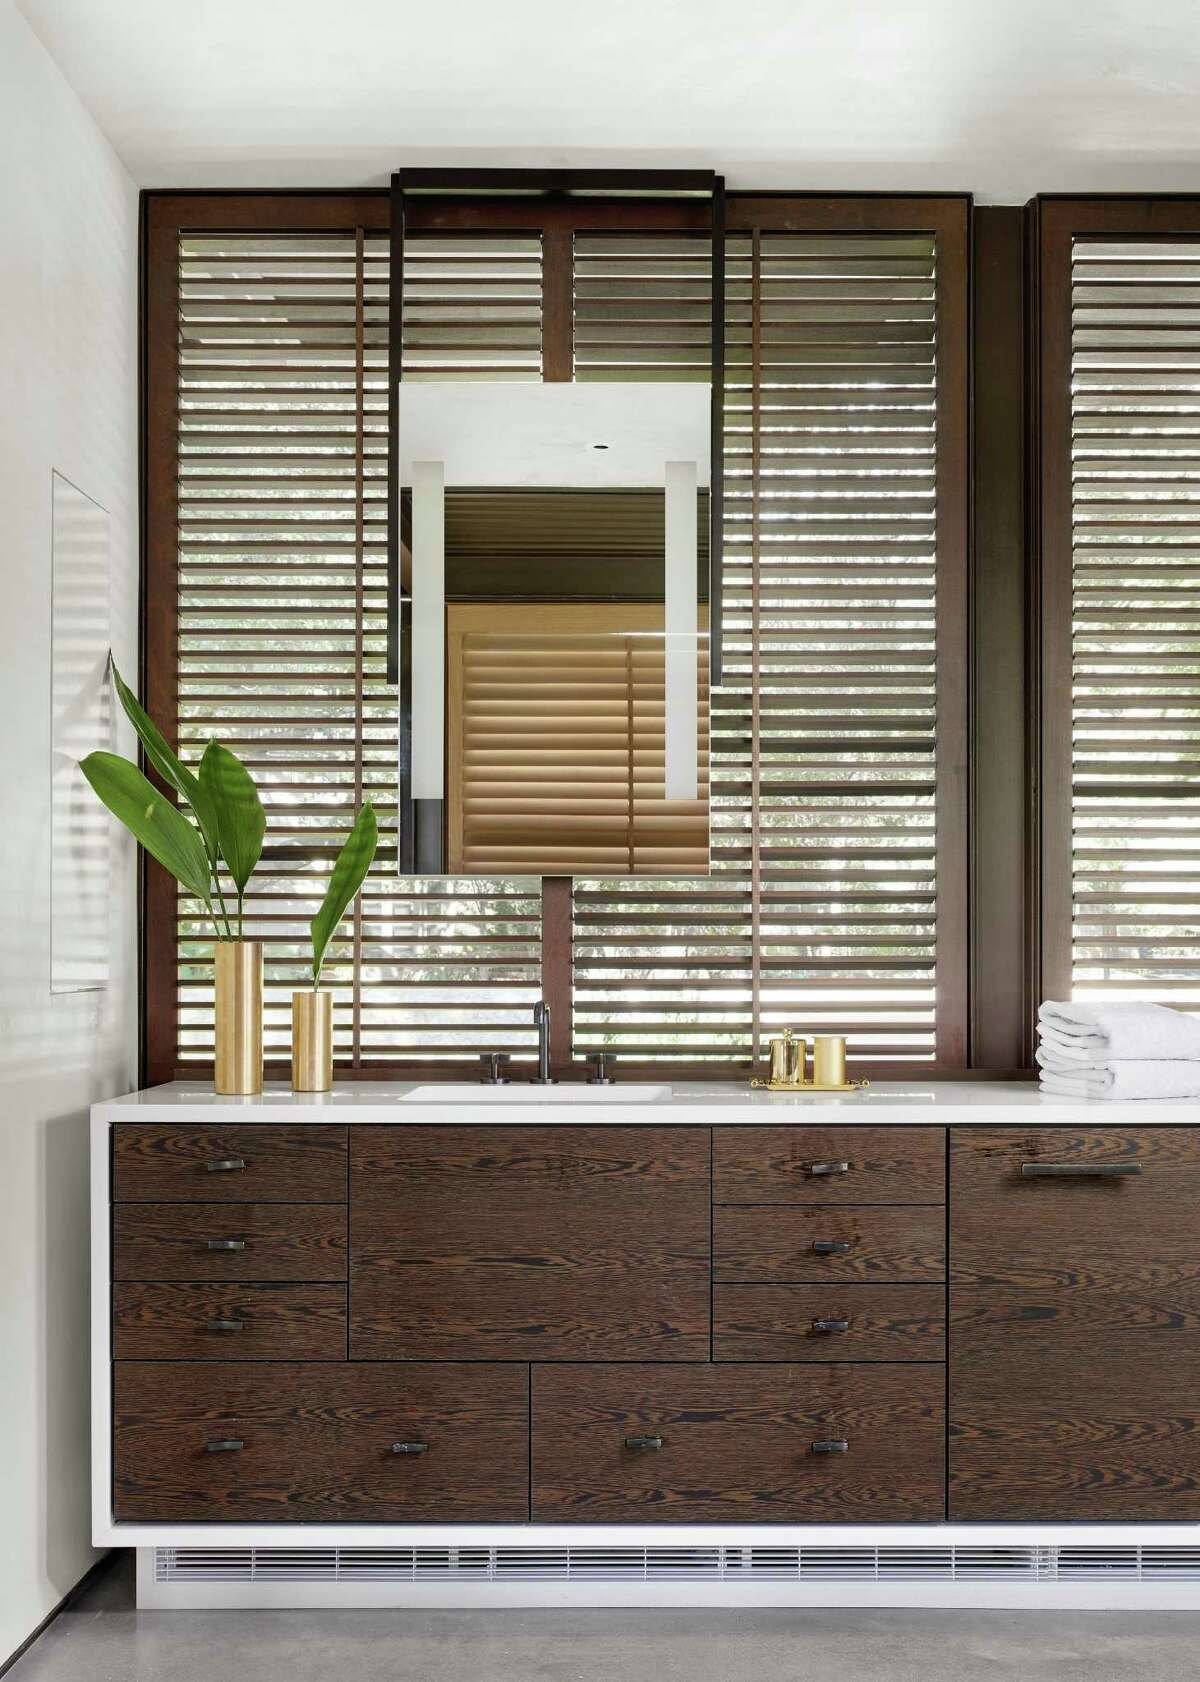 Wood has become a popular, if, perhaps, unintuitive, material sometimes used in master bathrooms. Properly sealed and maintained, woods such as white oak and mesquite not only look luxurious, but they?'ll also be able to withstand the rigors (and humidity) of a master bath for many years.